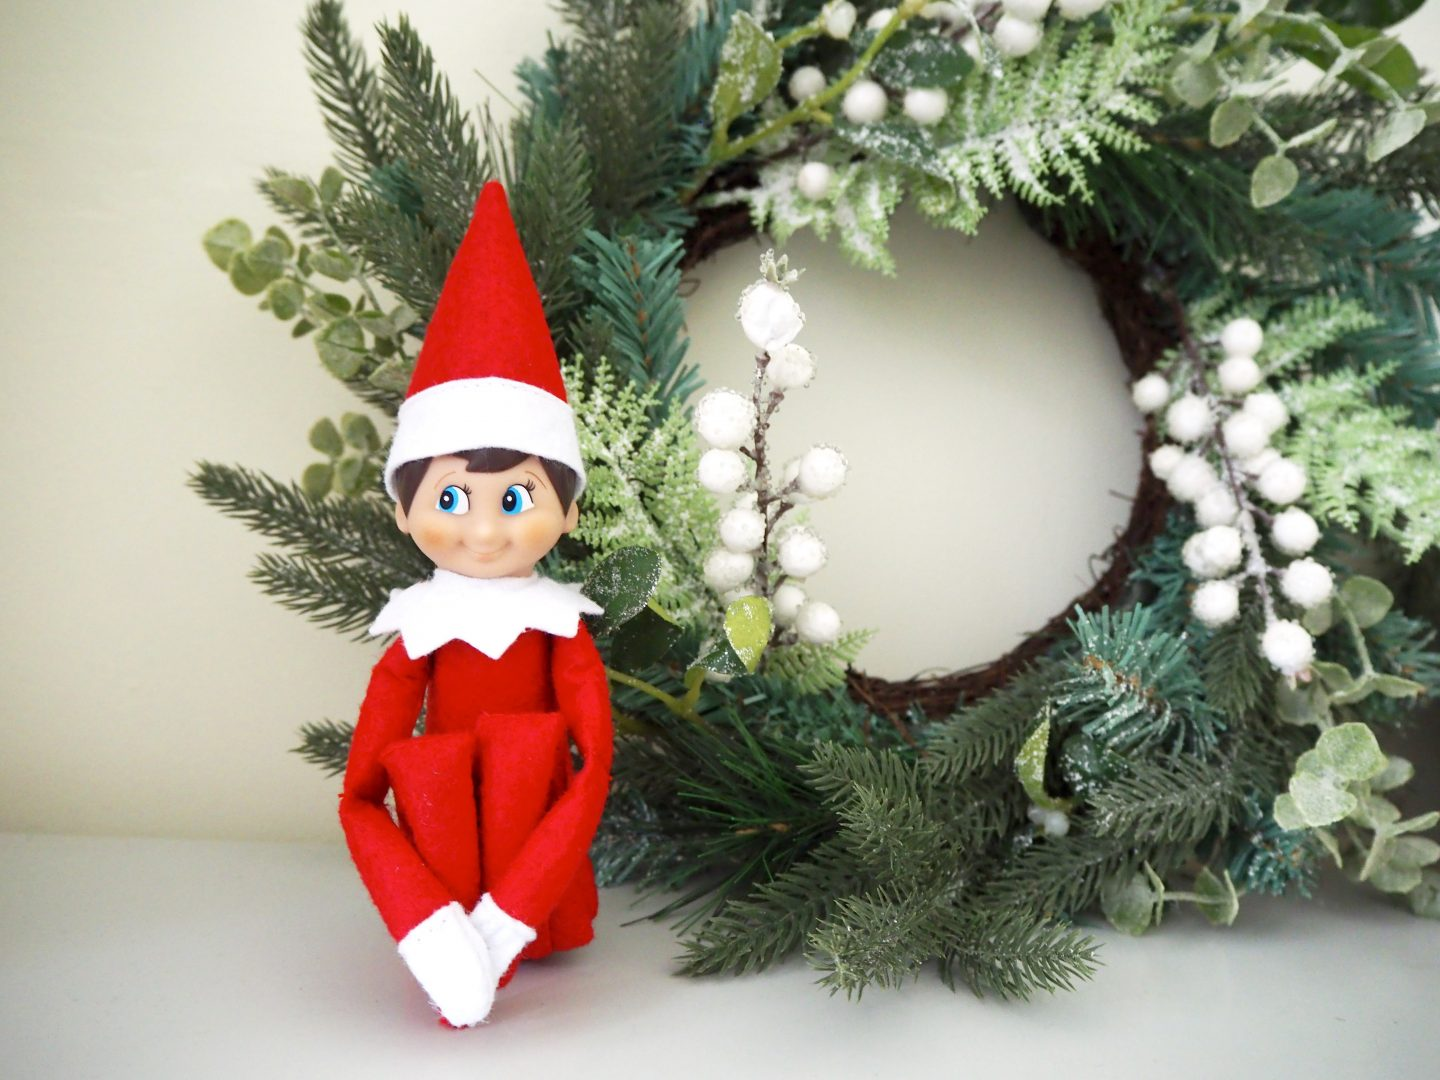 GIVING IN TO THE ELF ON THE SHELF HYPE AND OUR IDEAS